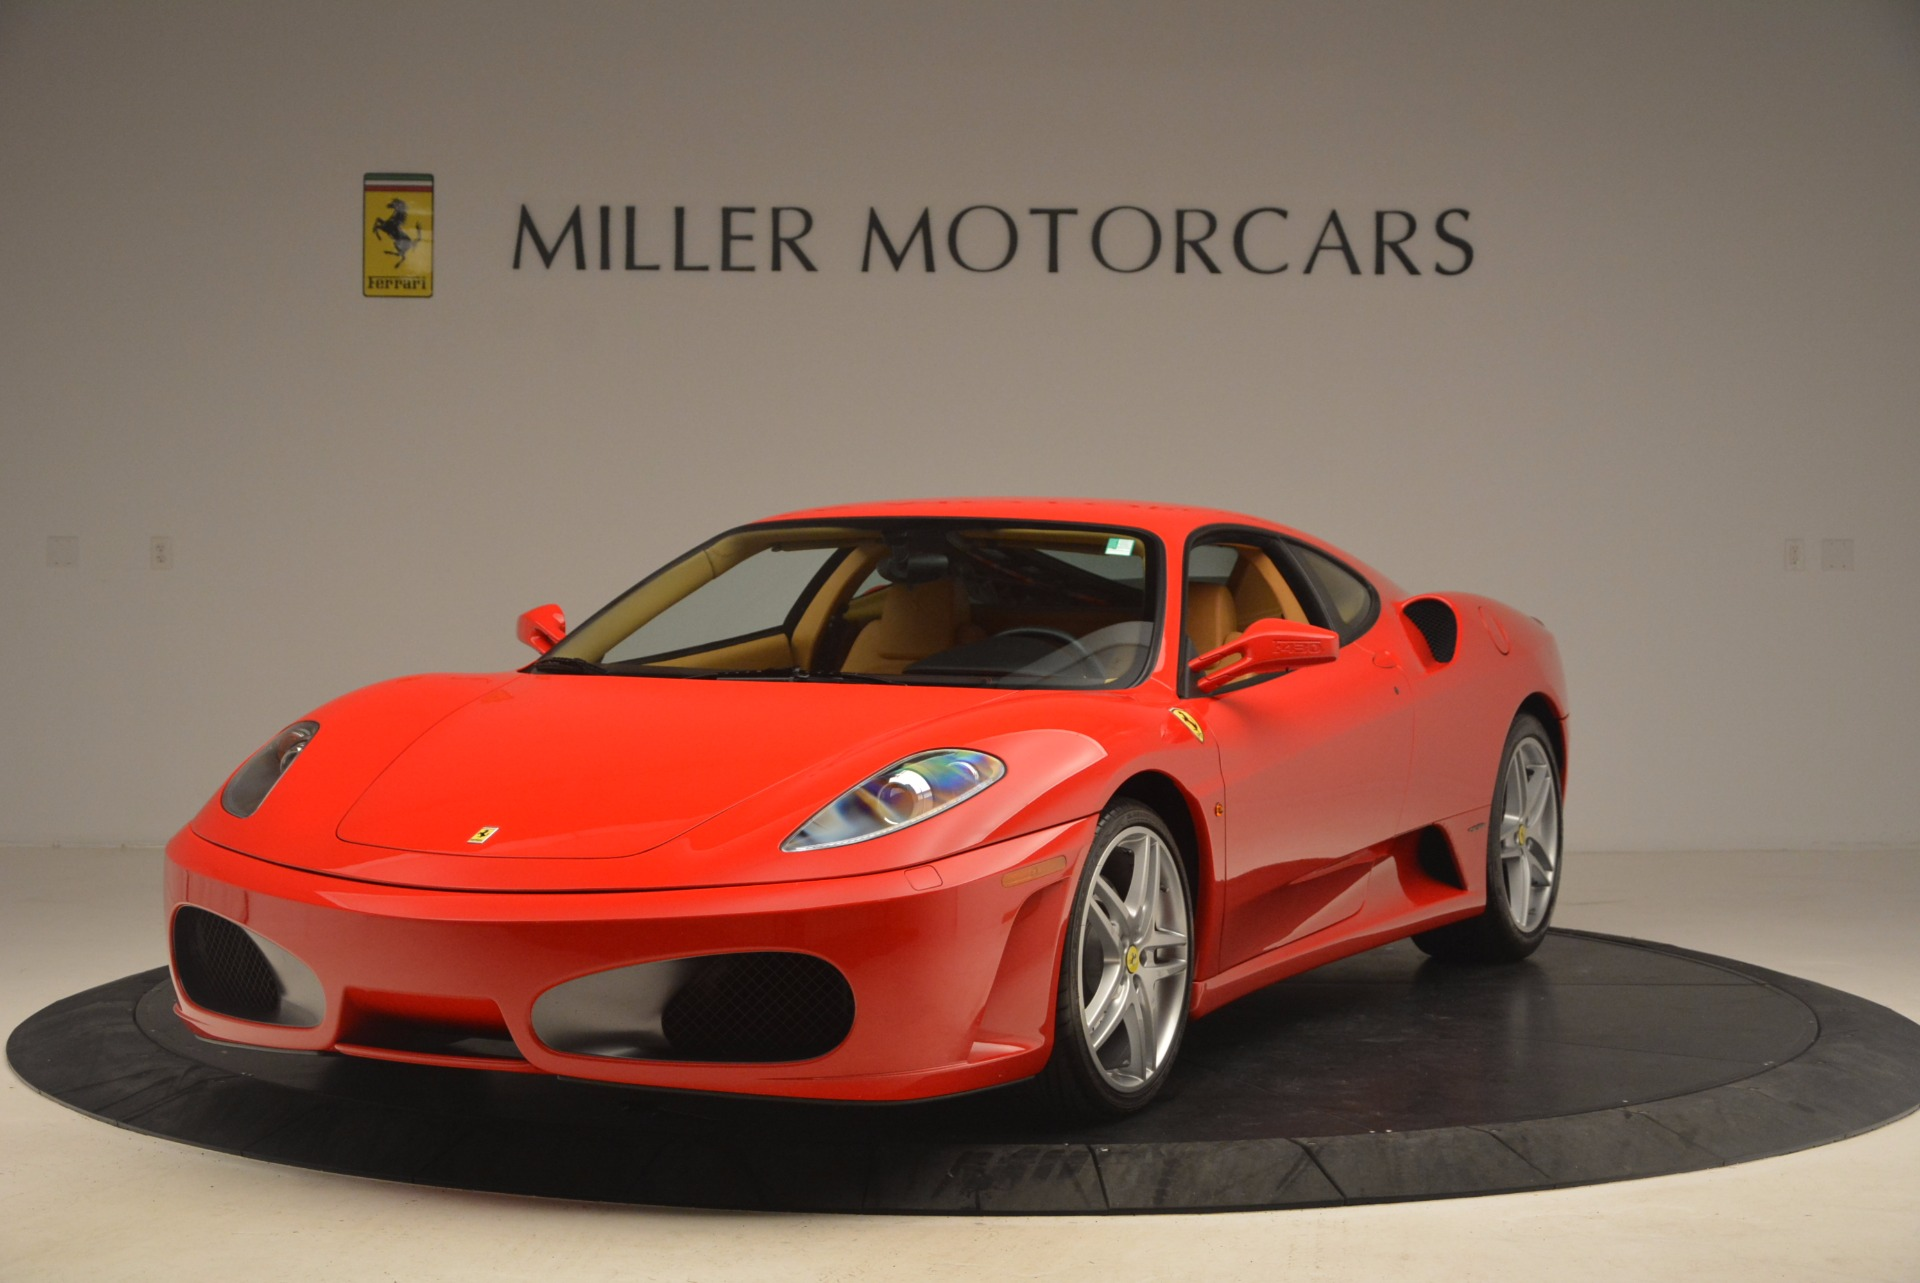 Used 2005 Ferrari F430 for sale Sold at Bentley Greenwich in Greenwich CT 06830 1